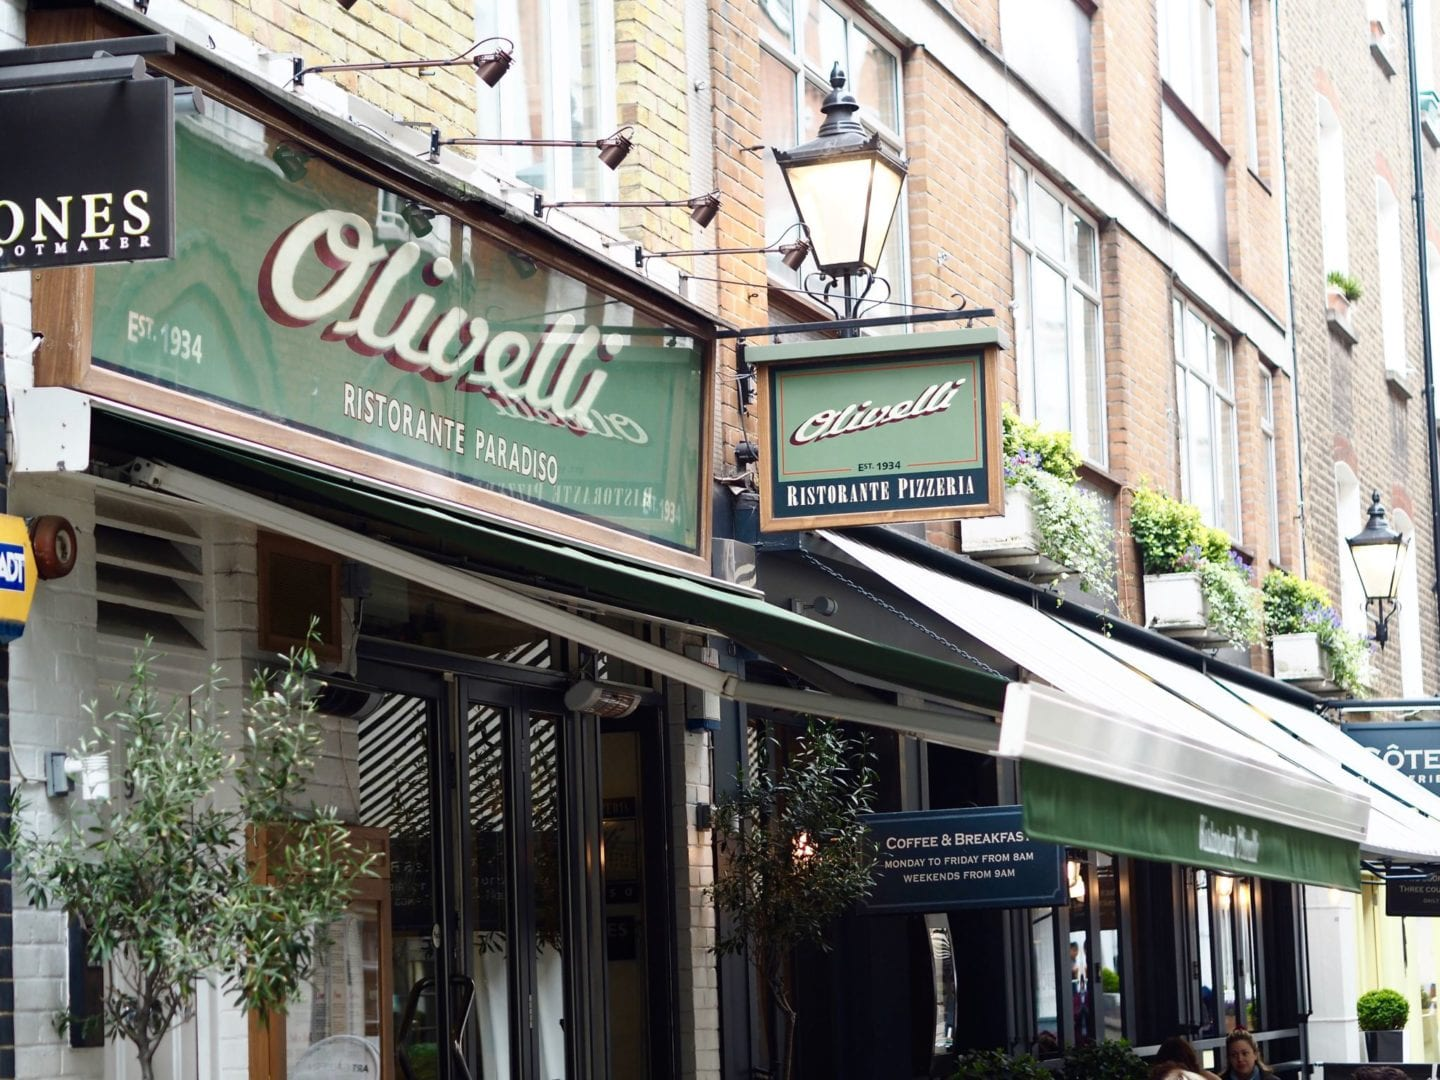 st christophers place london shopping